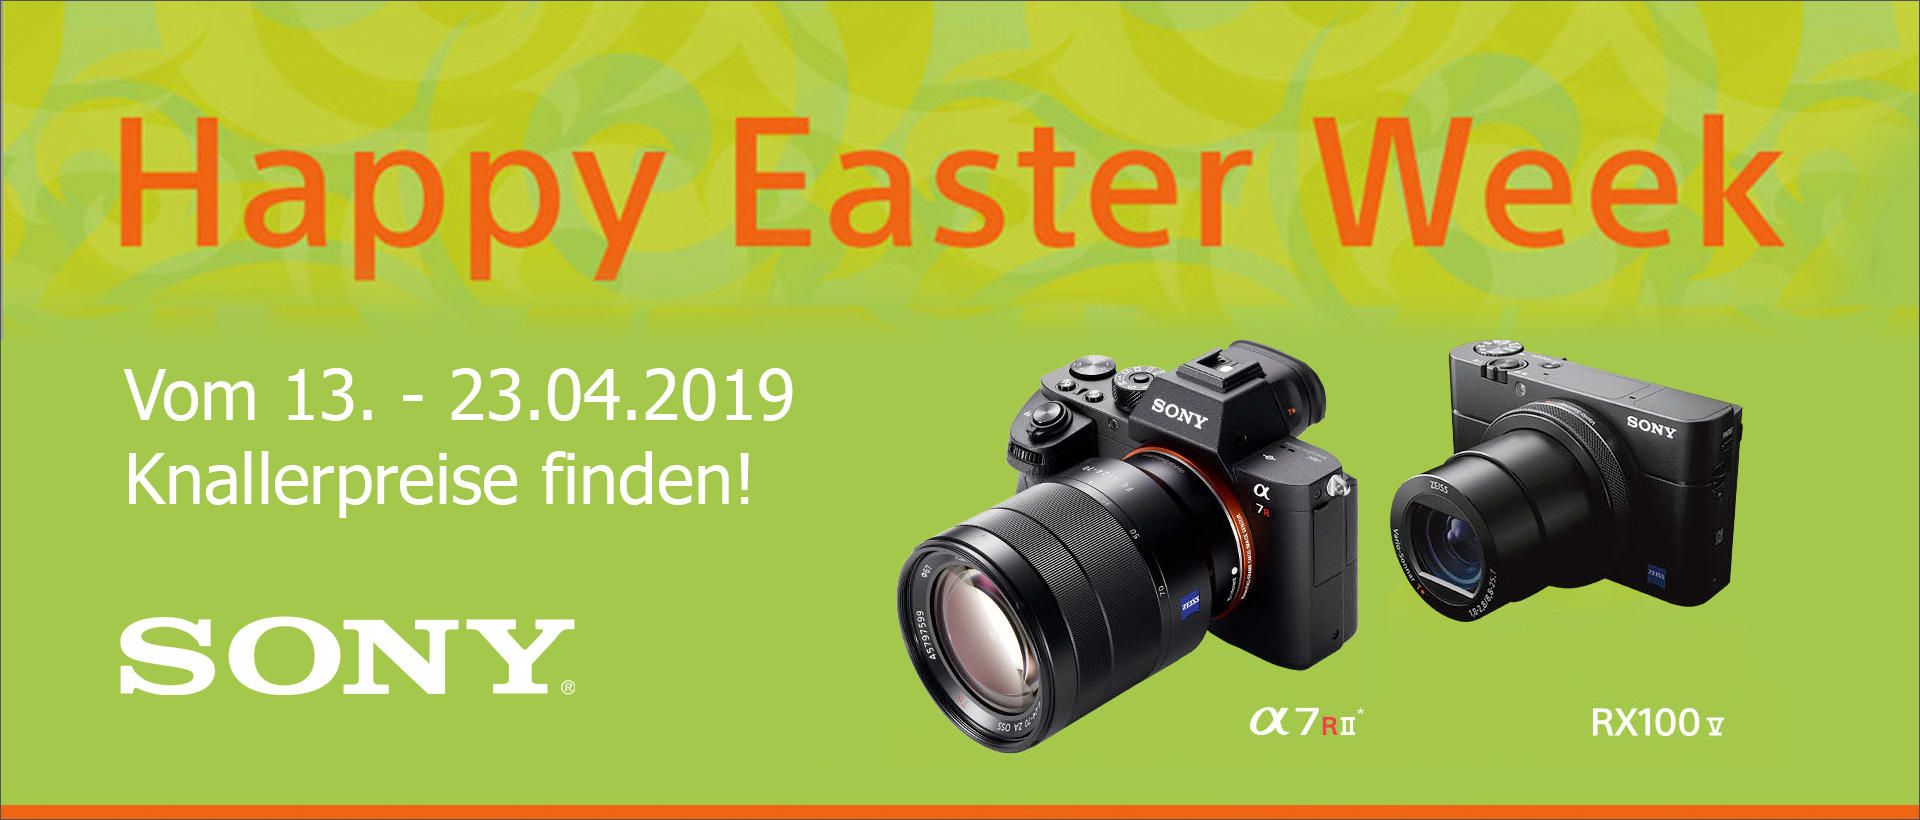 Sony Happy Easter Week